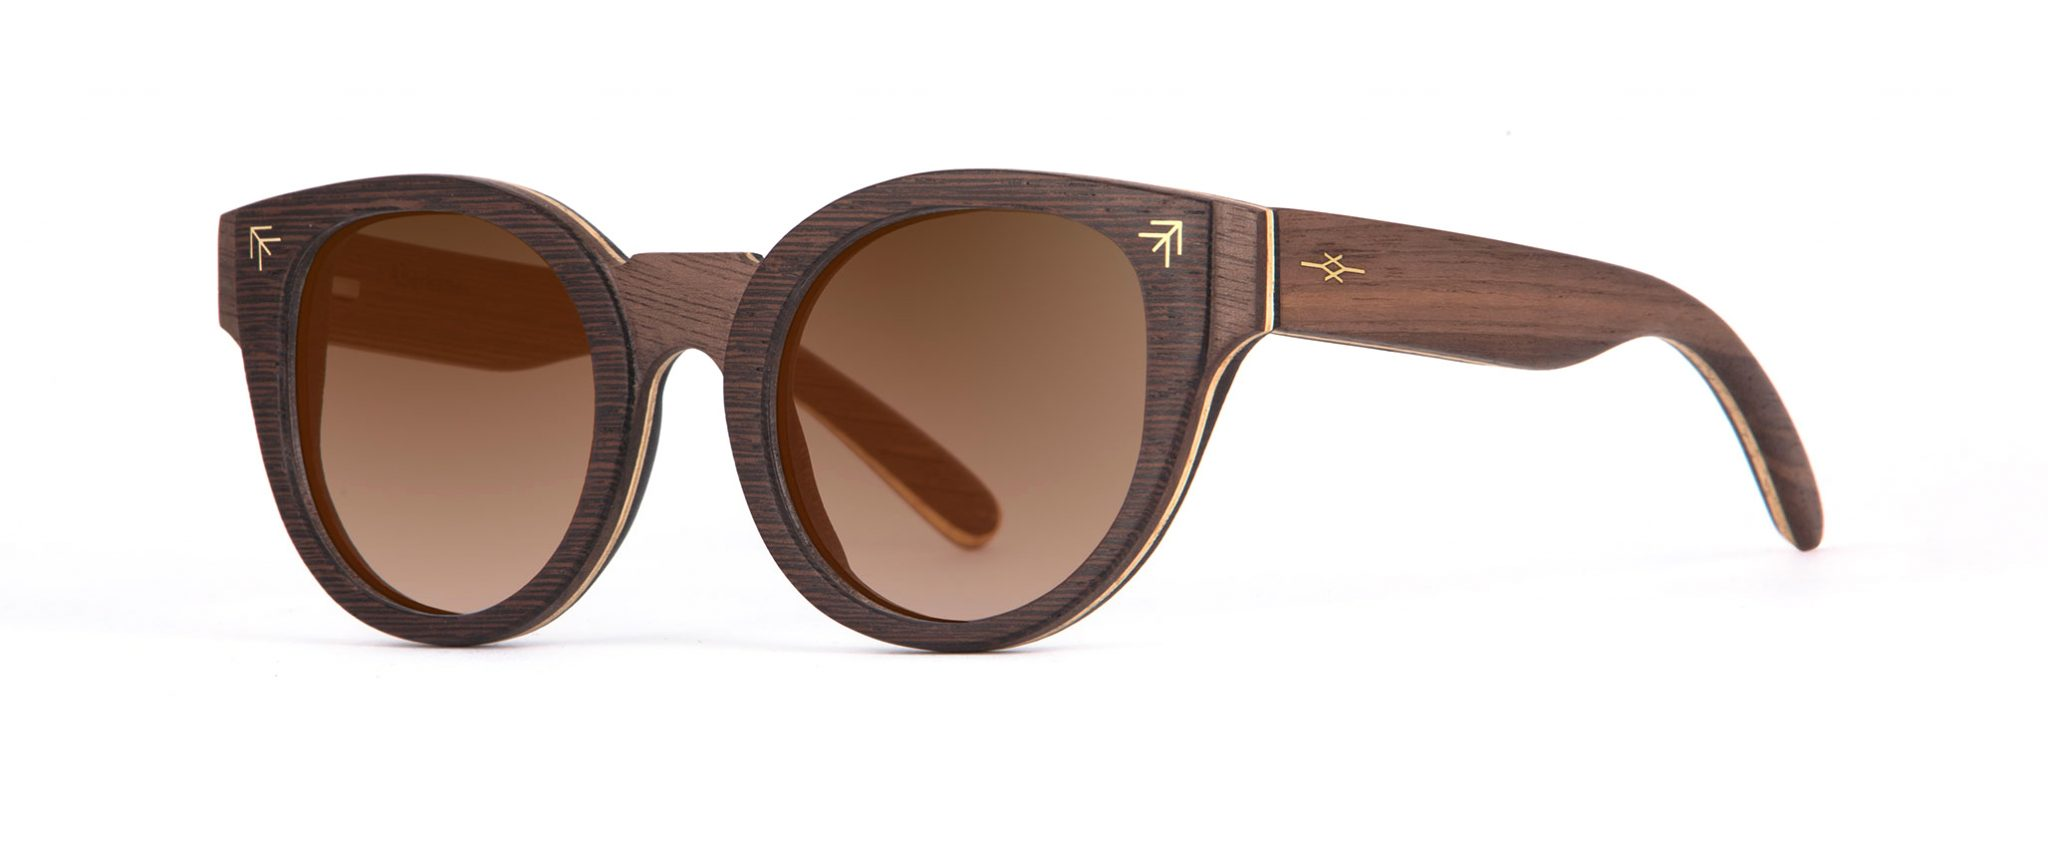 Ithran side Walnut Wenge Sunglasses Designer Eyewear Berber Tattoos